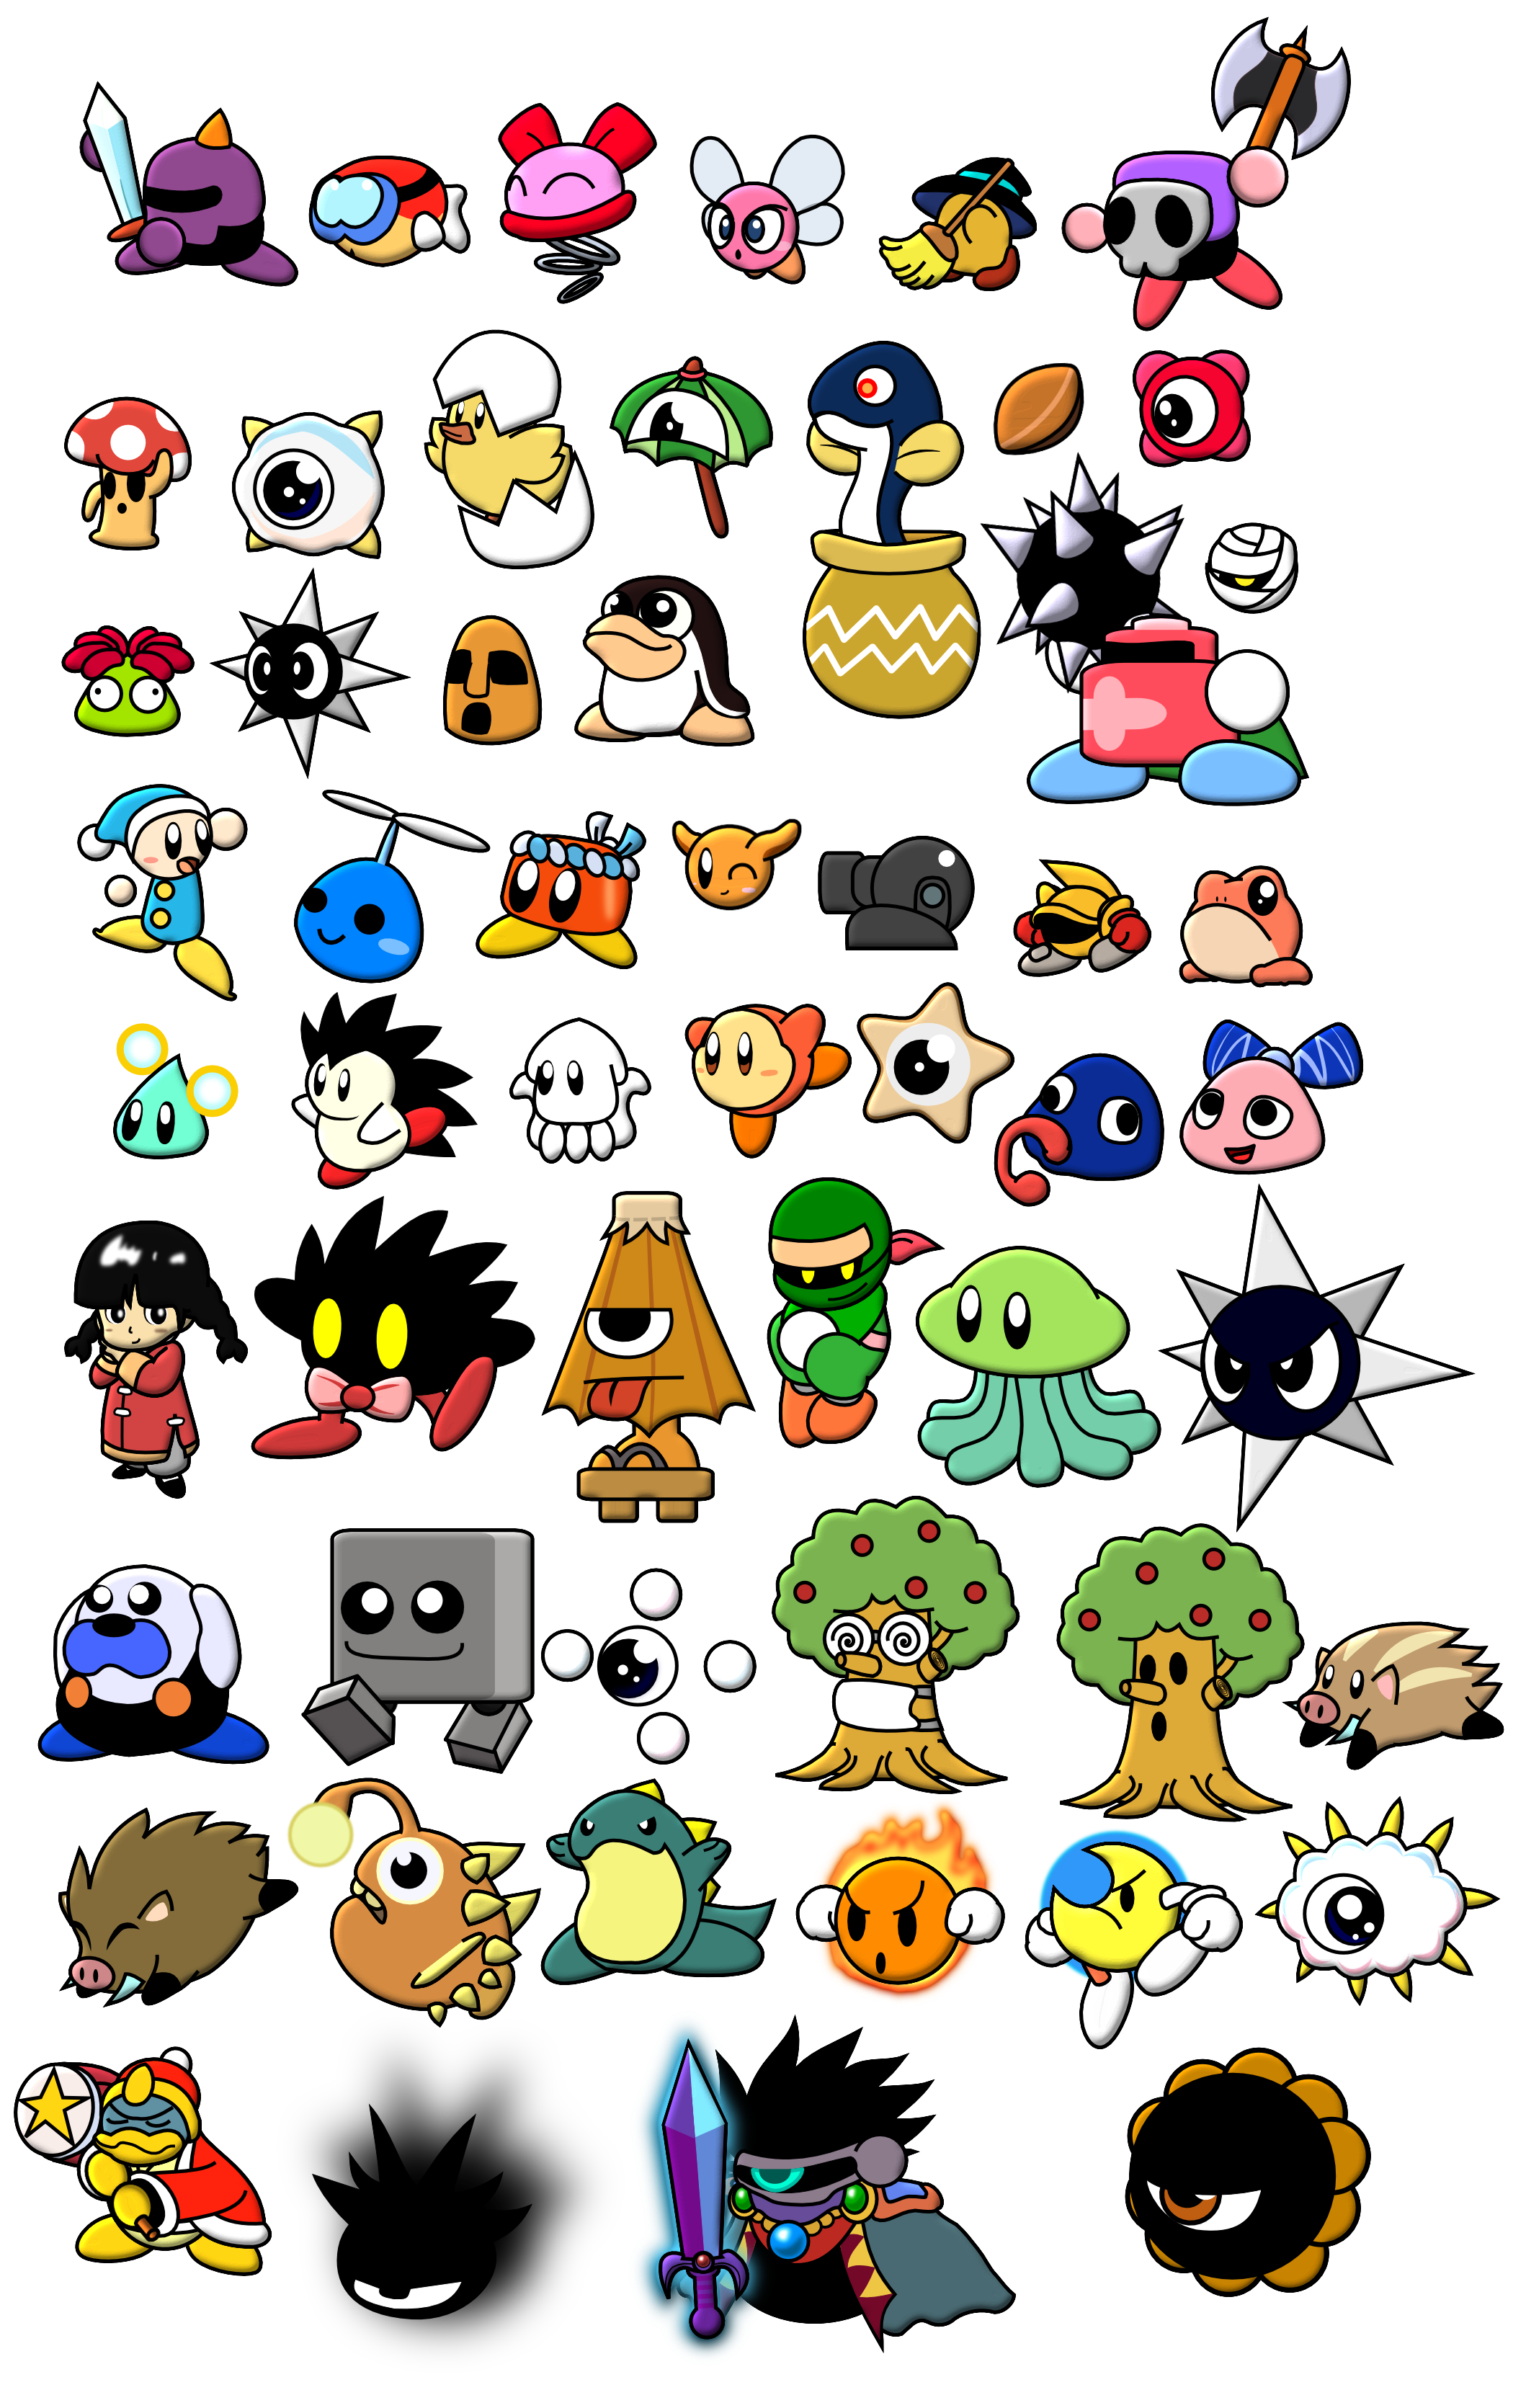 Game clipart lets play. All of these giant